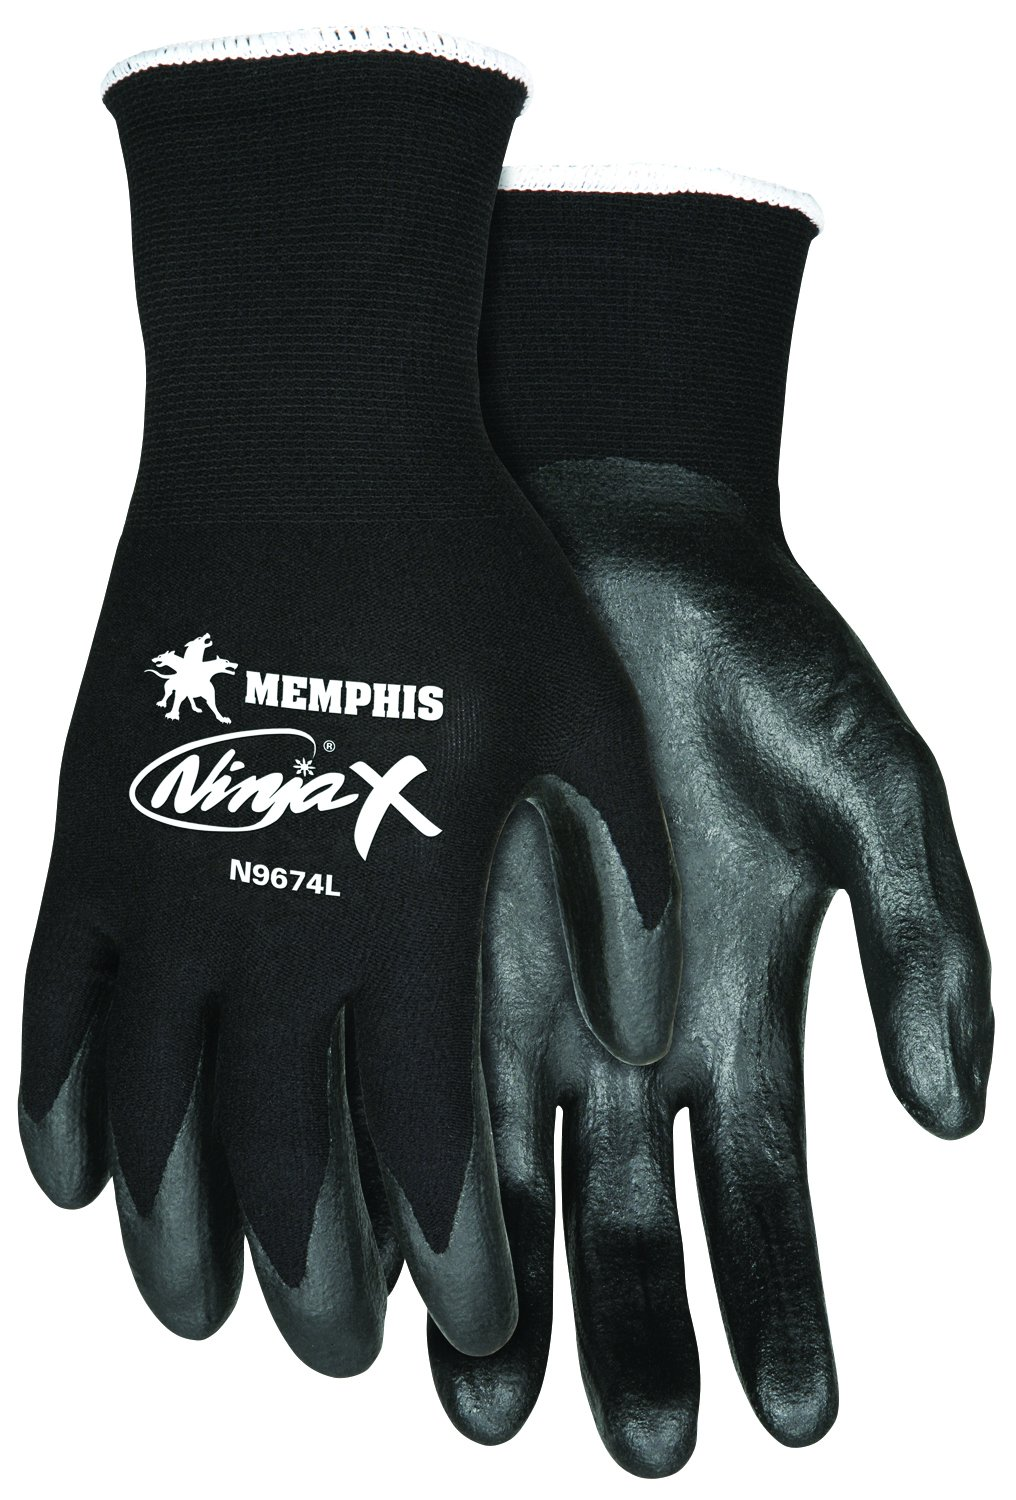 Memphis CN9674L Ninja X High Performance Gloves